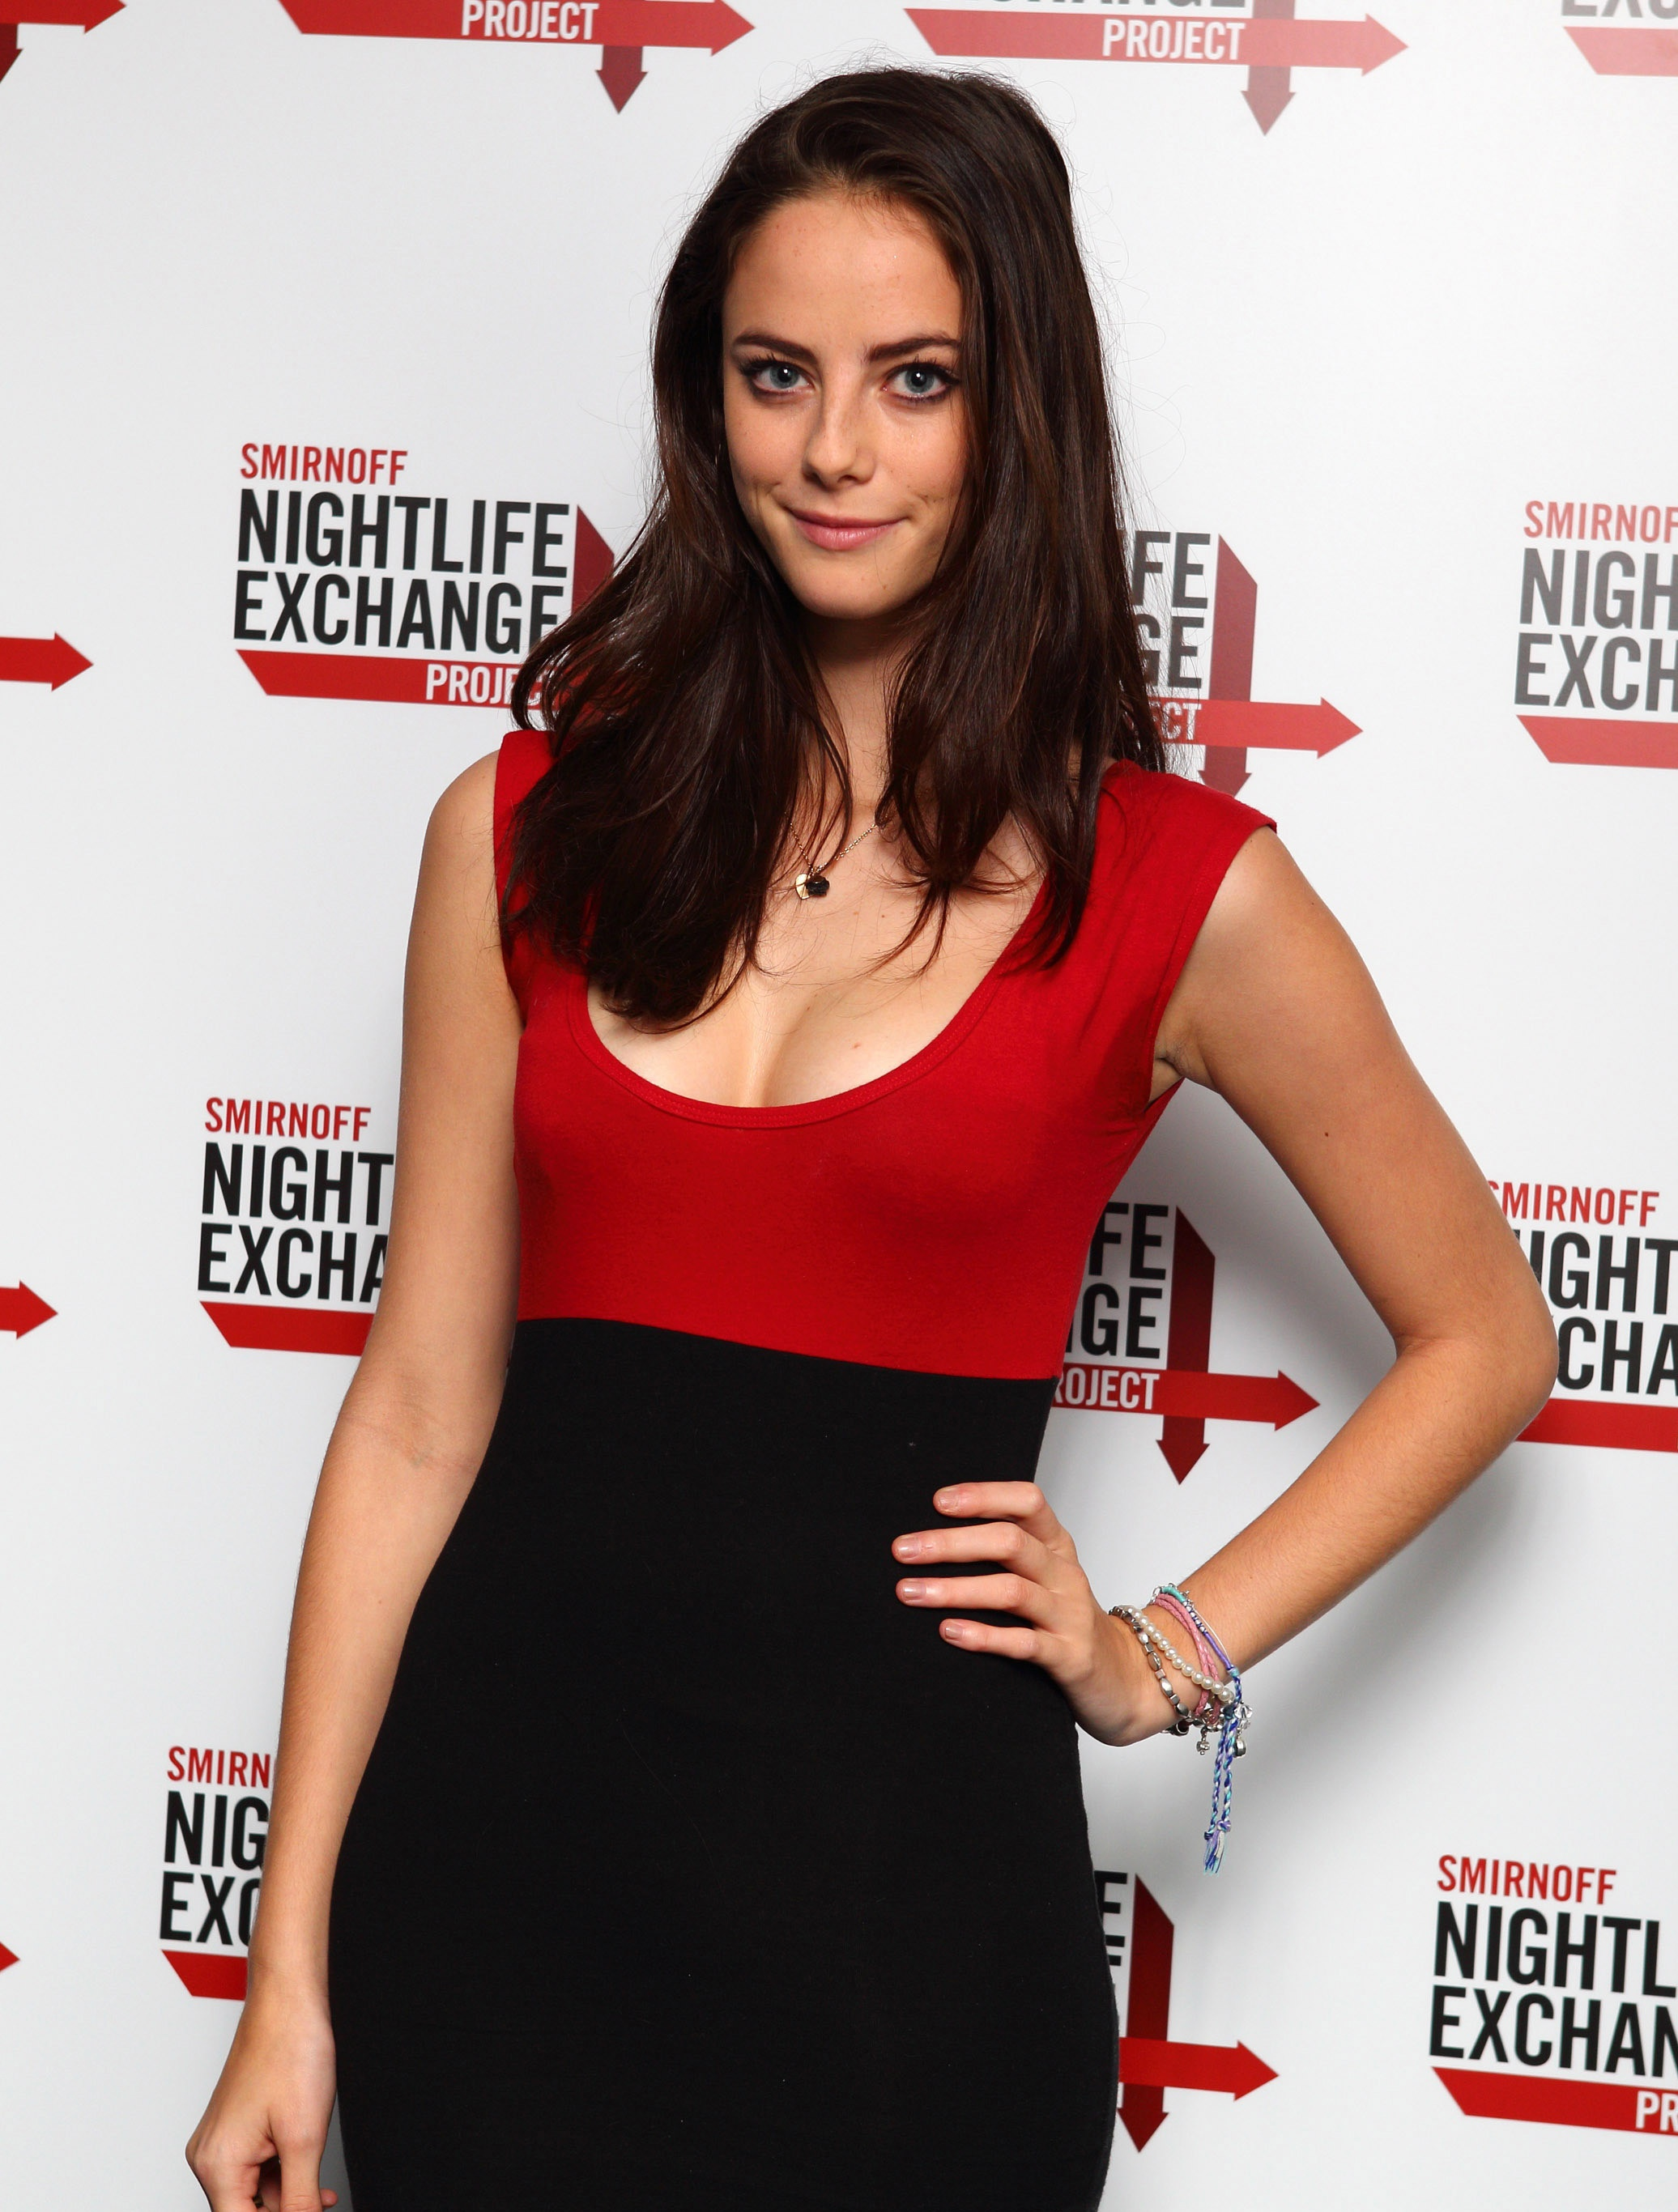 Kaya Scodelario Hot Swimsuit Pics, Near-Nude Photos